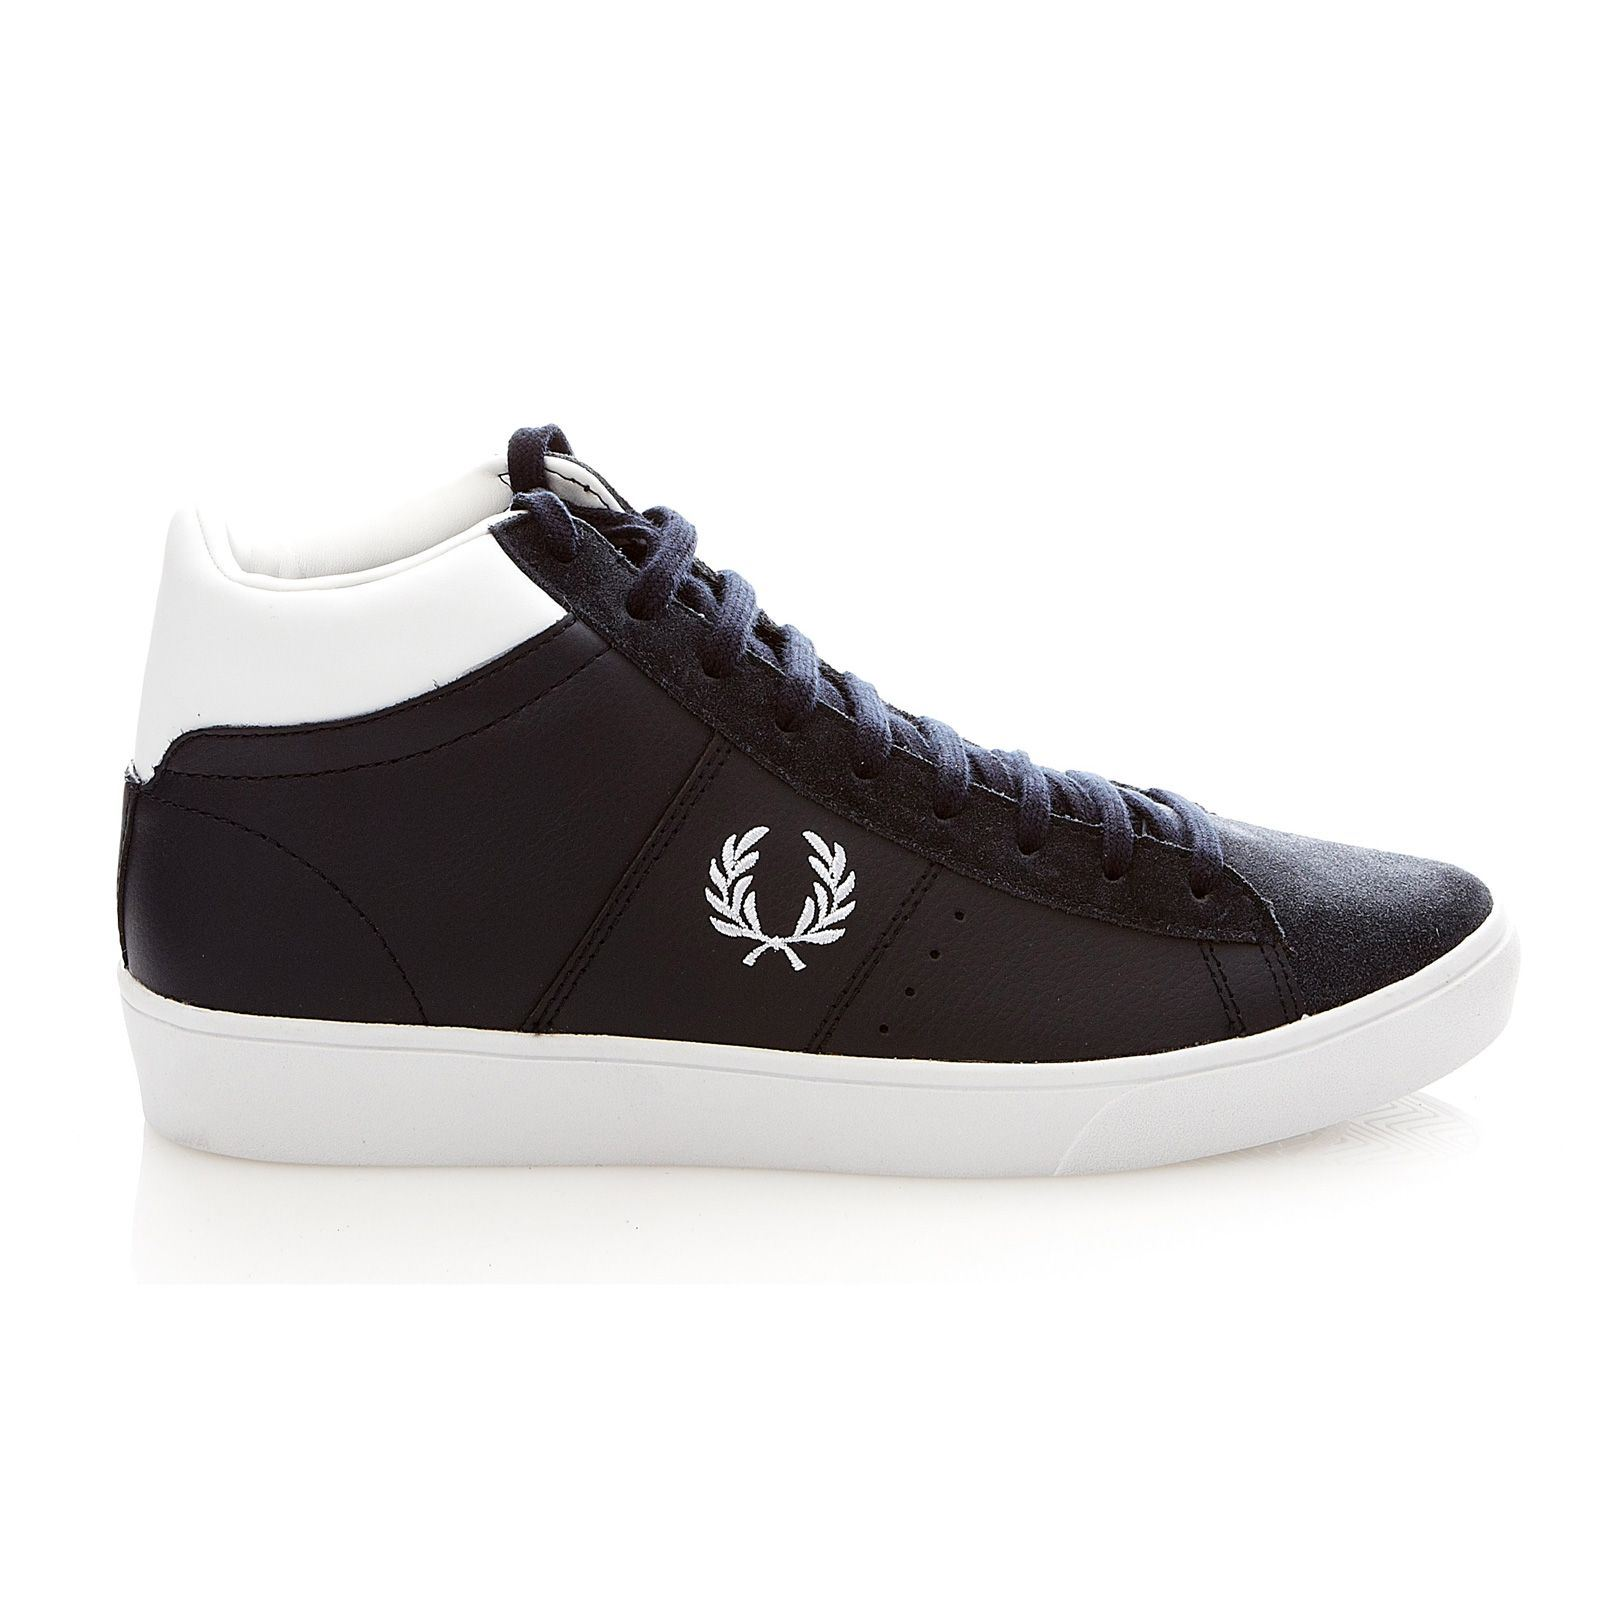 Fred Perry - Baskets montantes en cuir 3o6343b4Kt